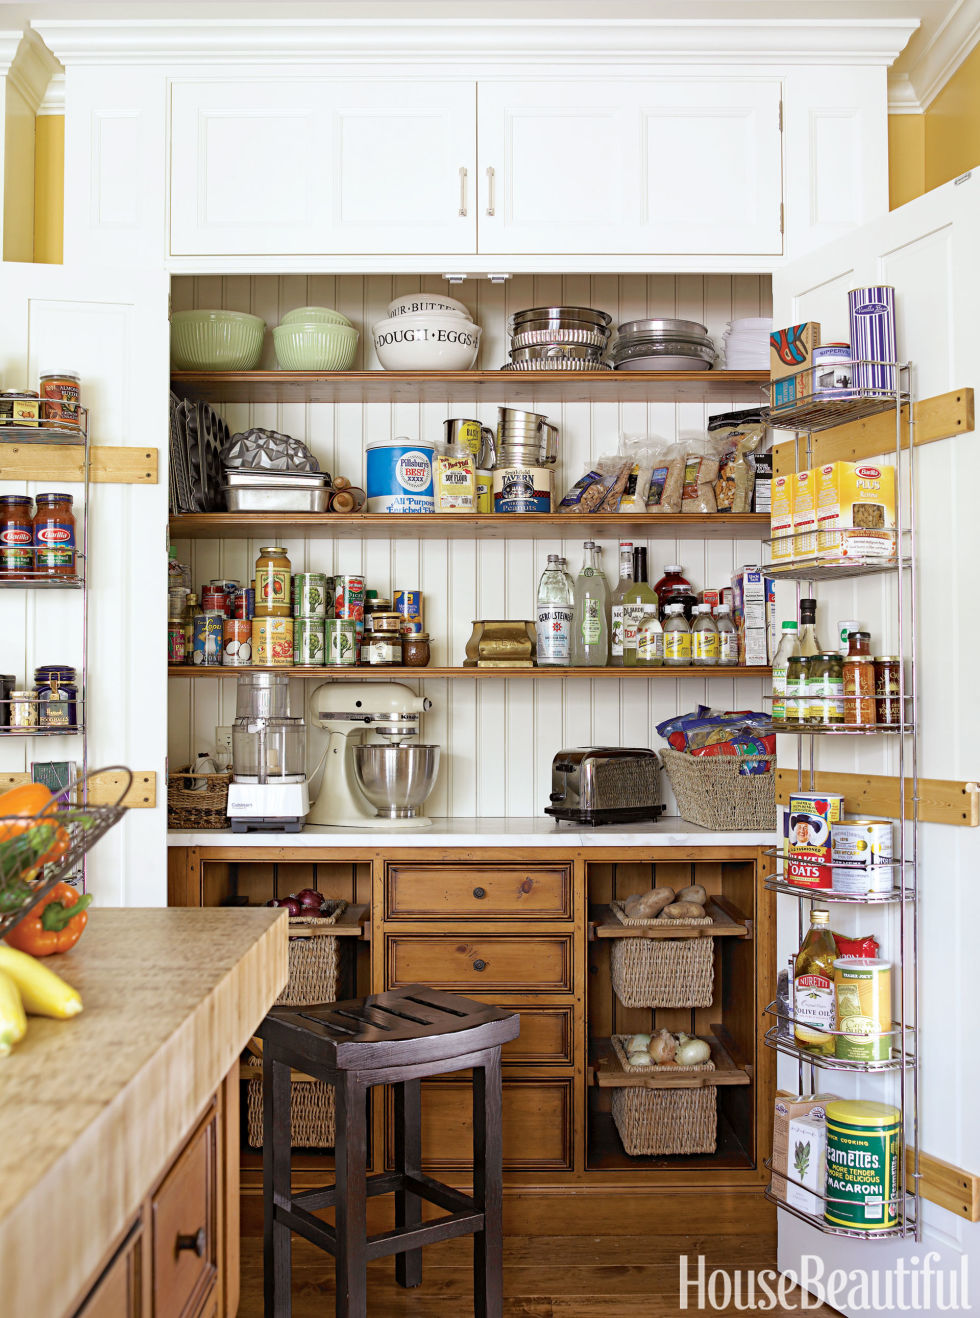 20 unique kitchen storage ideas easy storage solutions for kitchens - Storage Ideas For A Small Kitchen